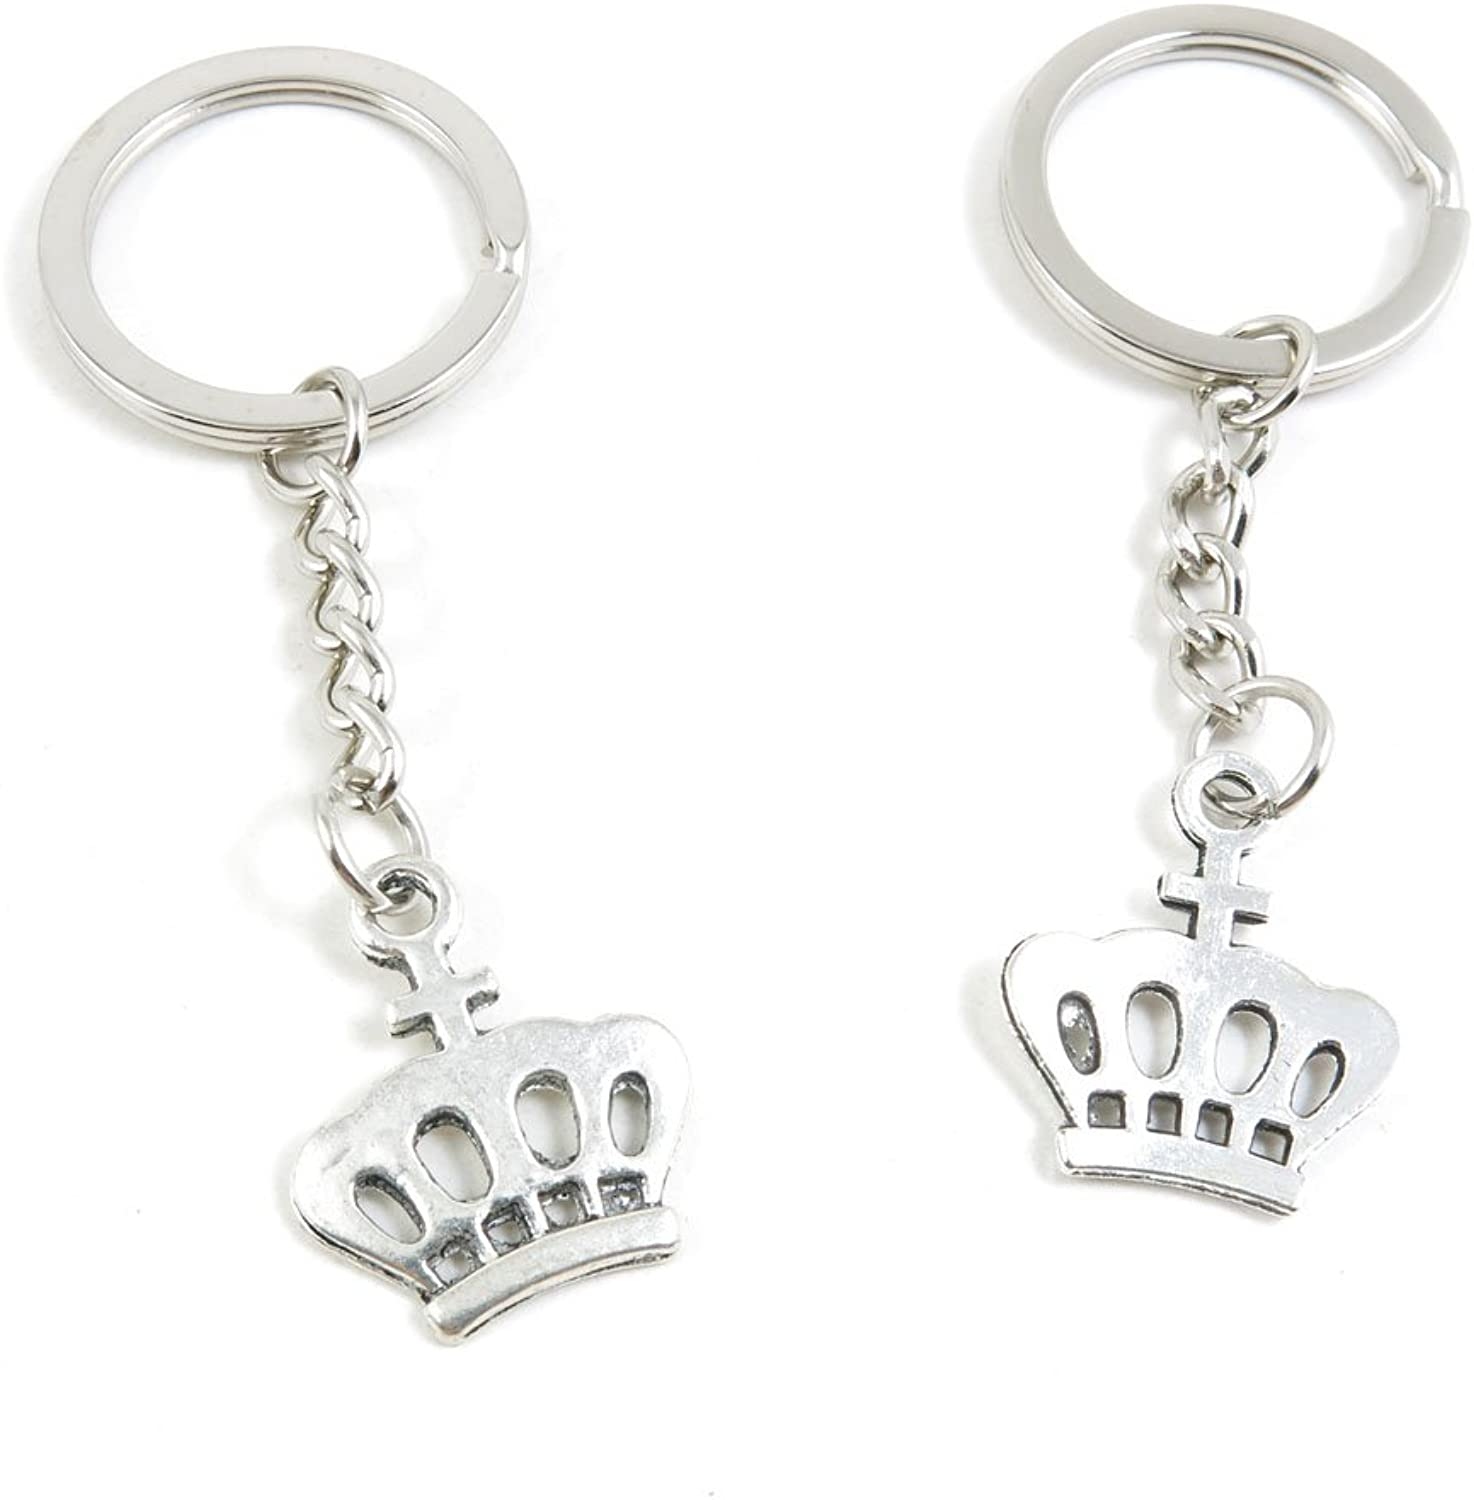 220 Pieces Fashion Jewelry Keyring Keychain Door Car Key Tag Ring Chain Supplier Supply Wholesale Bulk Lots F3FV8 Crown